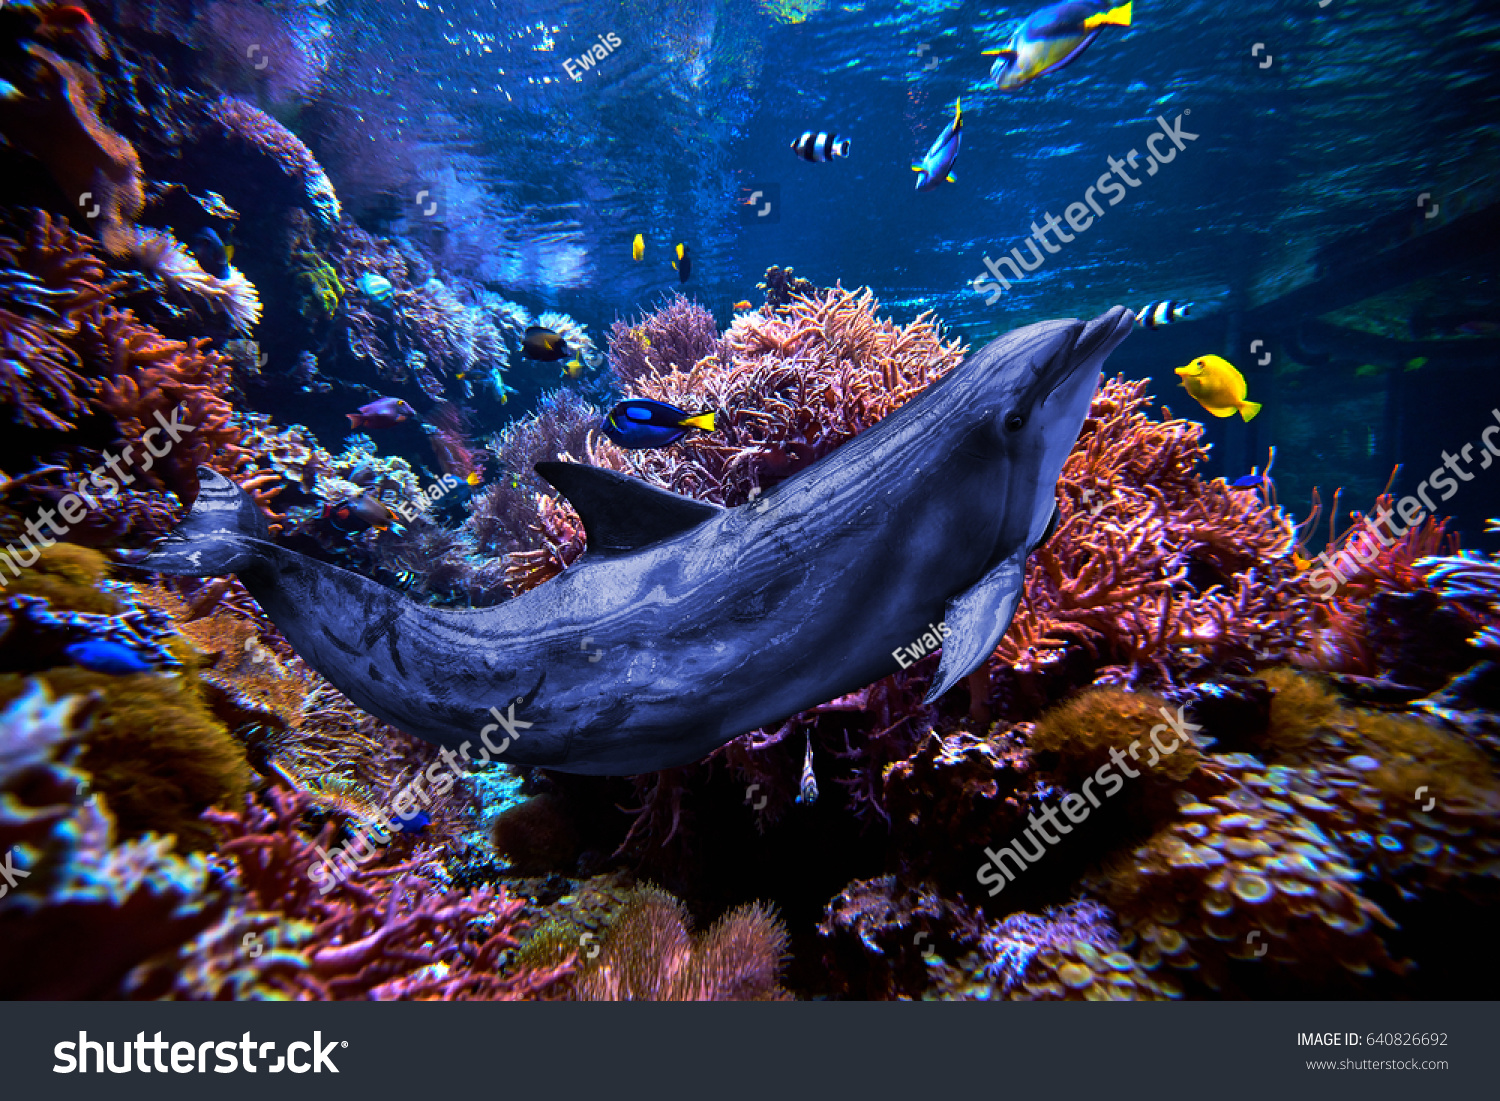 Dolphins sea stock photo 640826692 shutterstock dolphins in the sea publicscrutiny Images